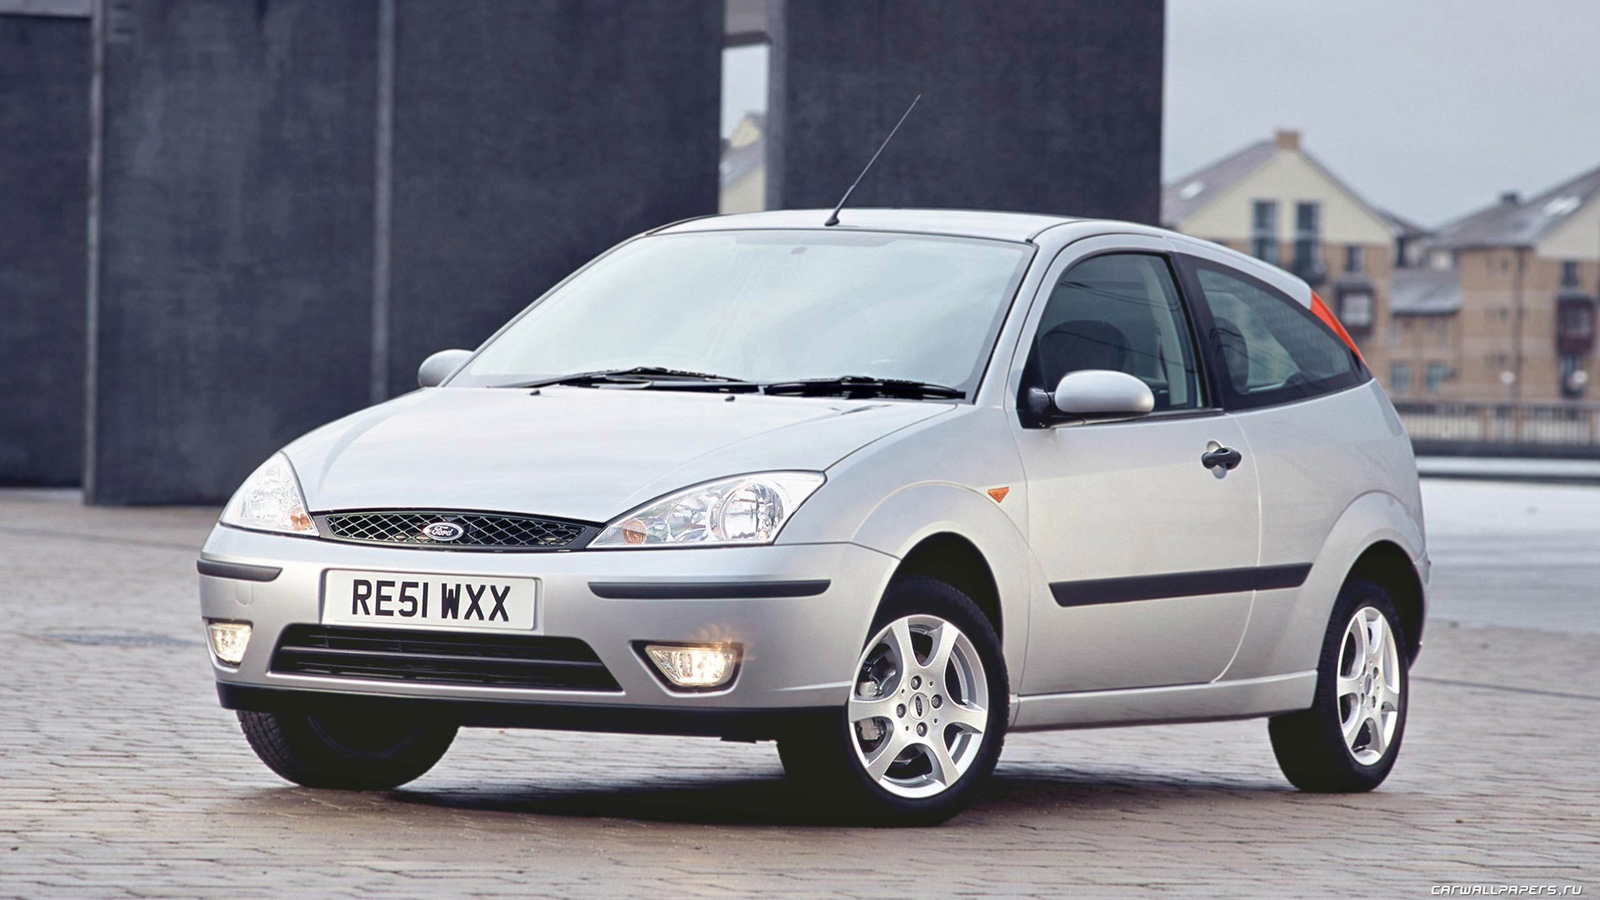 2001 ford mondeo iii hatchback pictures information and. Black Bedroom Furniture Sets. Home Design Ideas